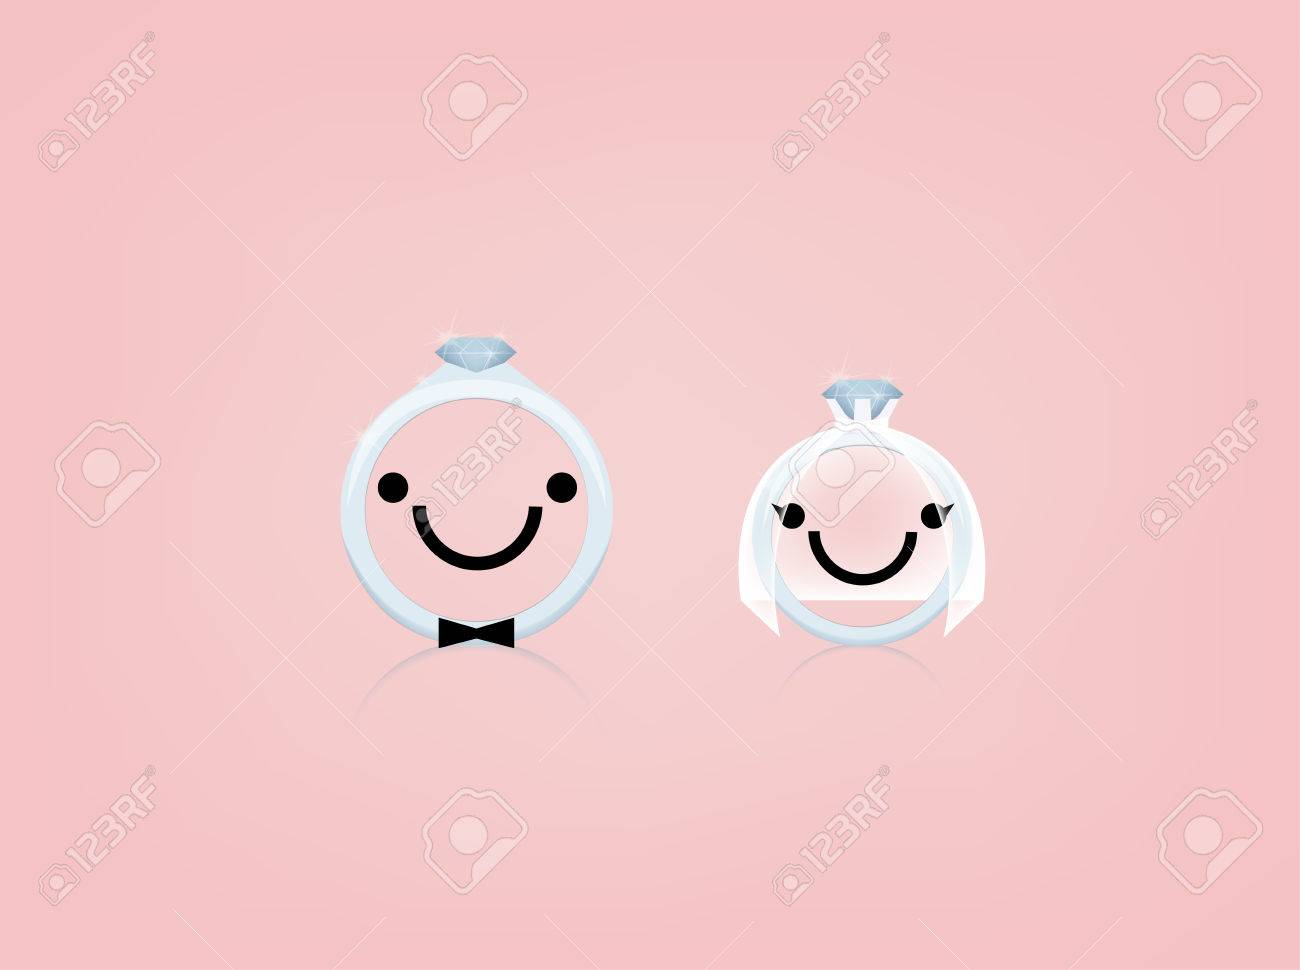 Beautiful Graphic Design Of Wedding Ring With Smile Face And ...